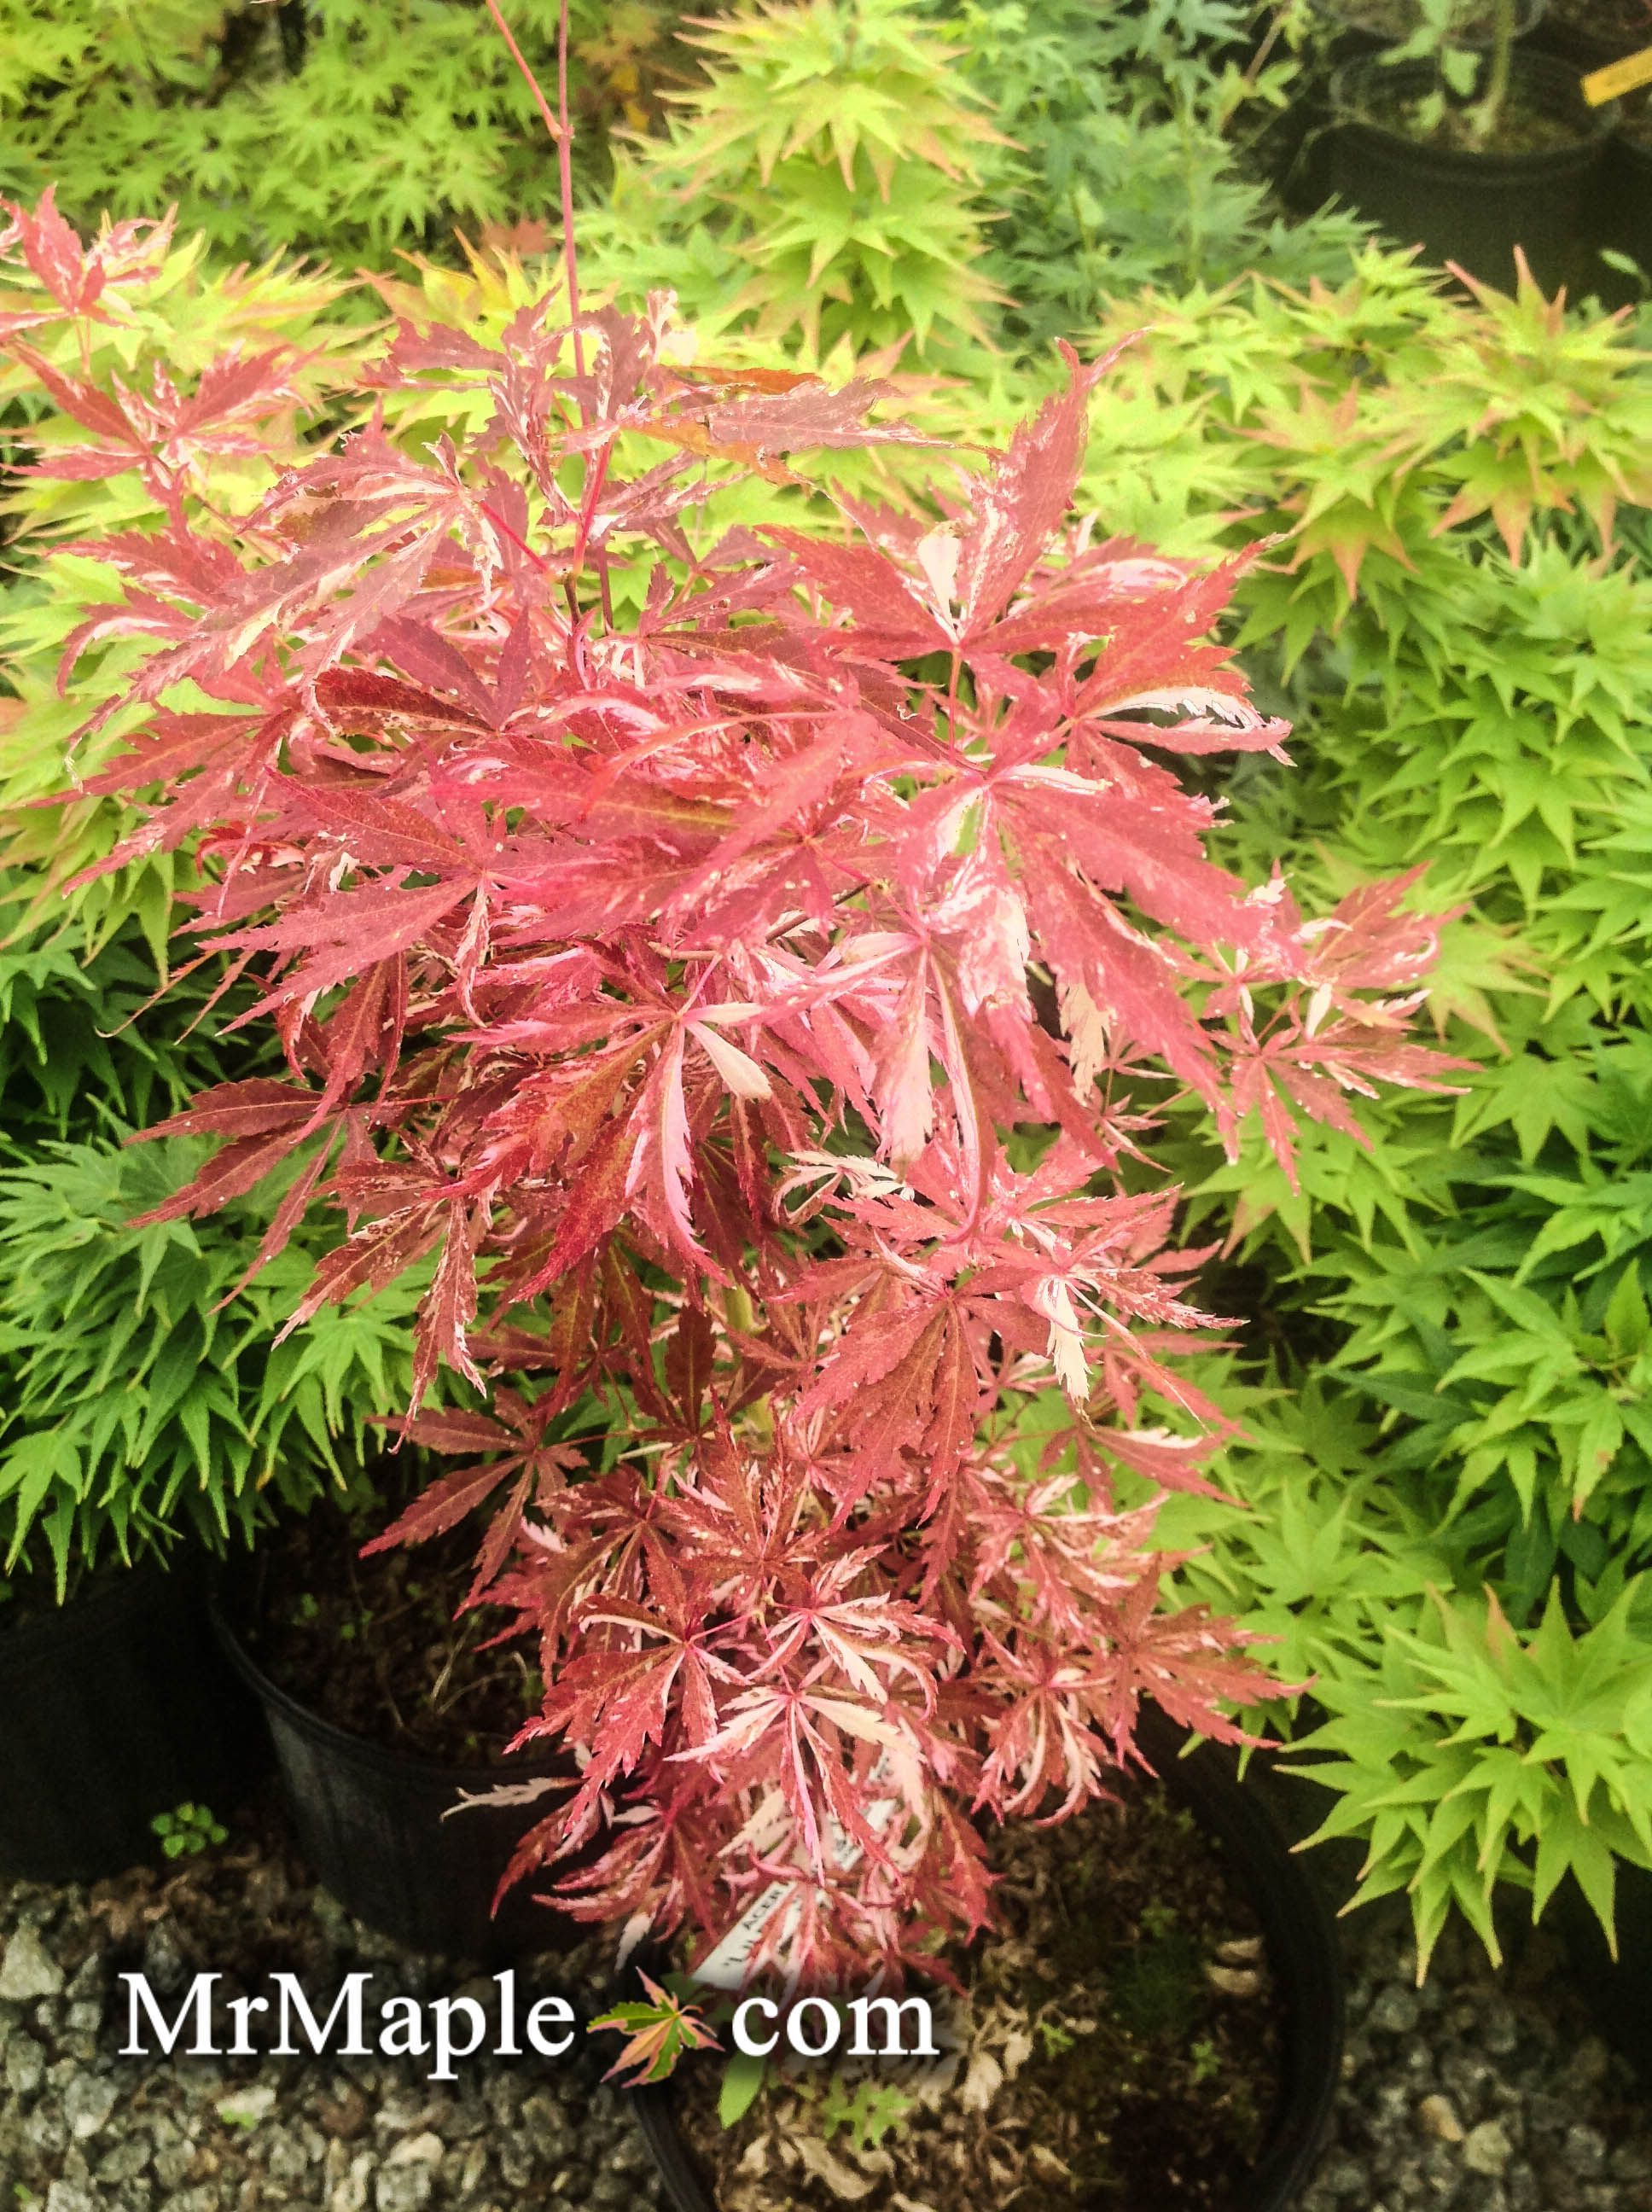 How to care for a fern leaf japanese maple - Acer Palmatum Lileeannes Jewel Is A Beautiful Variegated Japanese Maple This Read And Pink Japanese